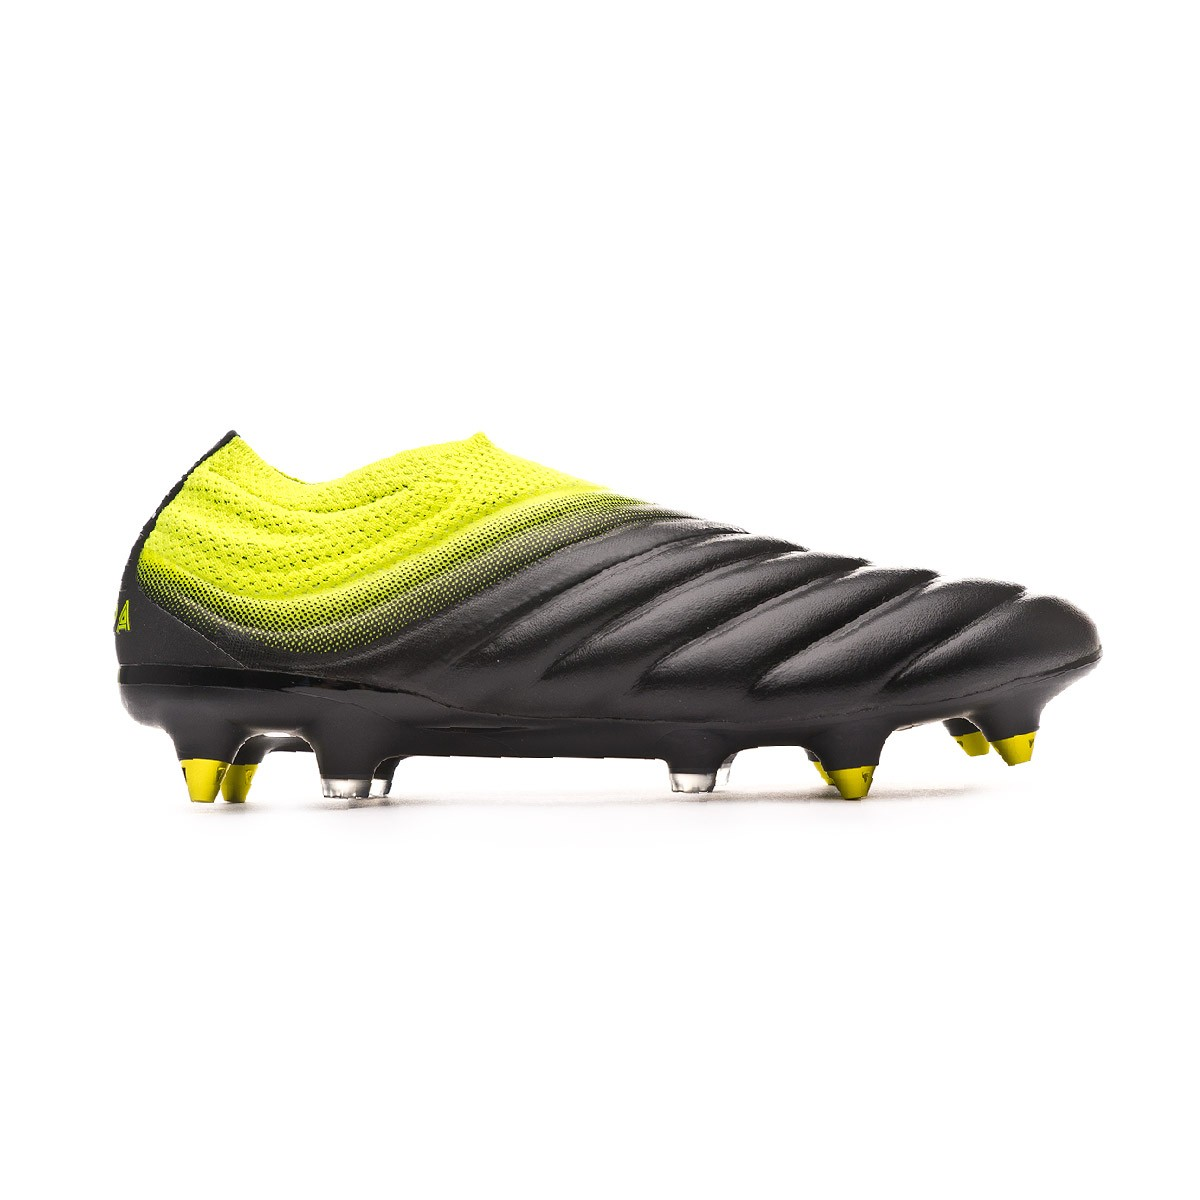 brand new ac9eb 644a7 Boot adidas Copa 19+ SG Core black-Solar yellow-Core black - Football store  Fútbol Emotion